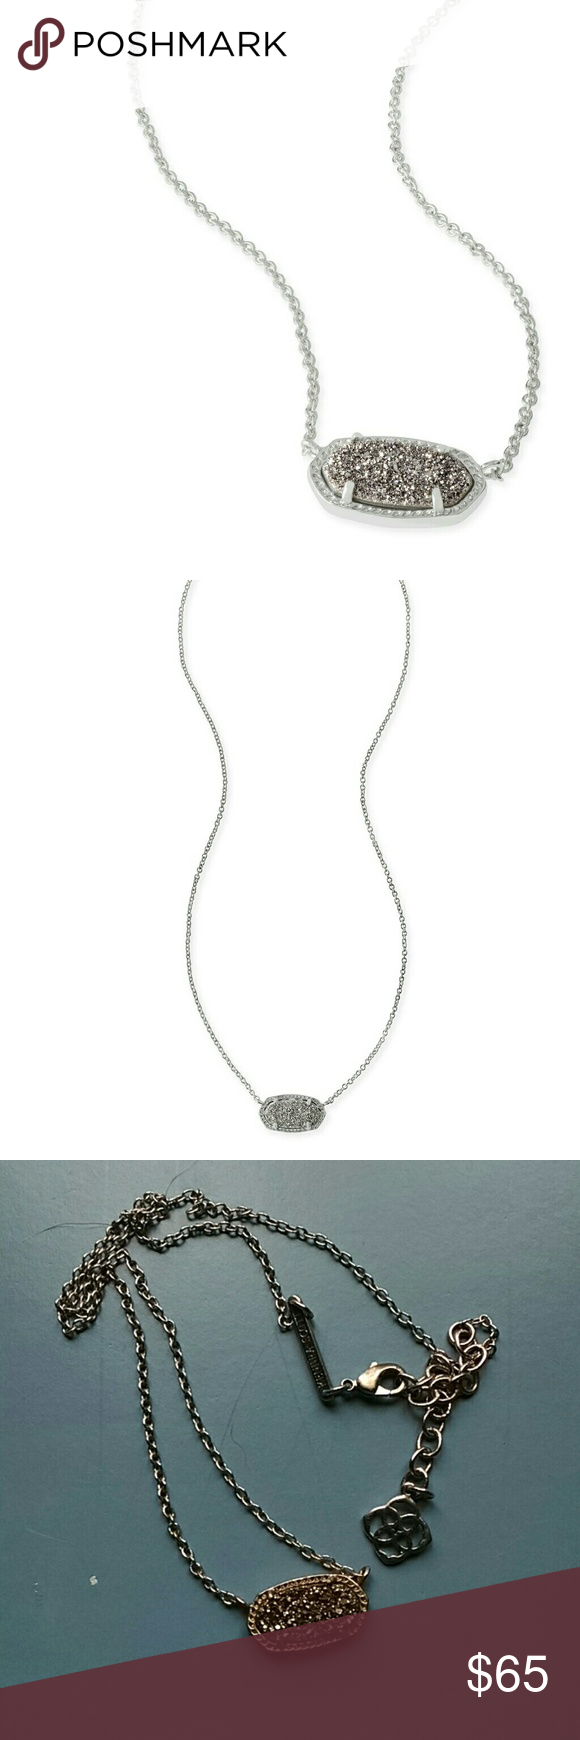 Elisa Silver Pendant Necklace in Platinum Drusy Kendra Scott Kendra Scott Jewelry Necklaces